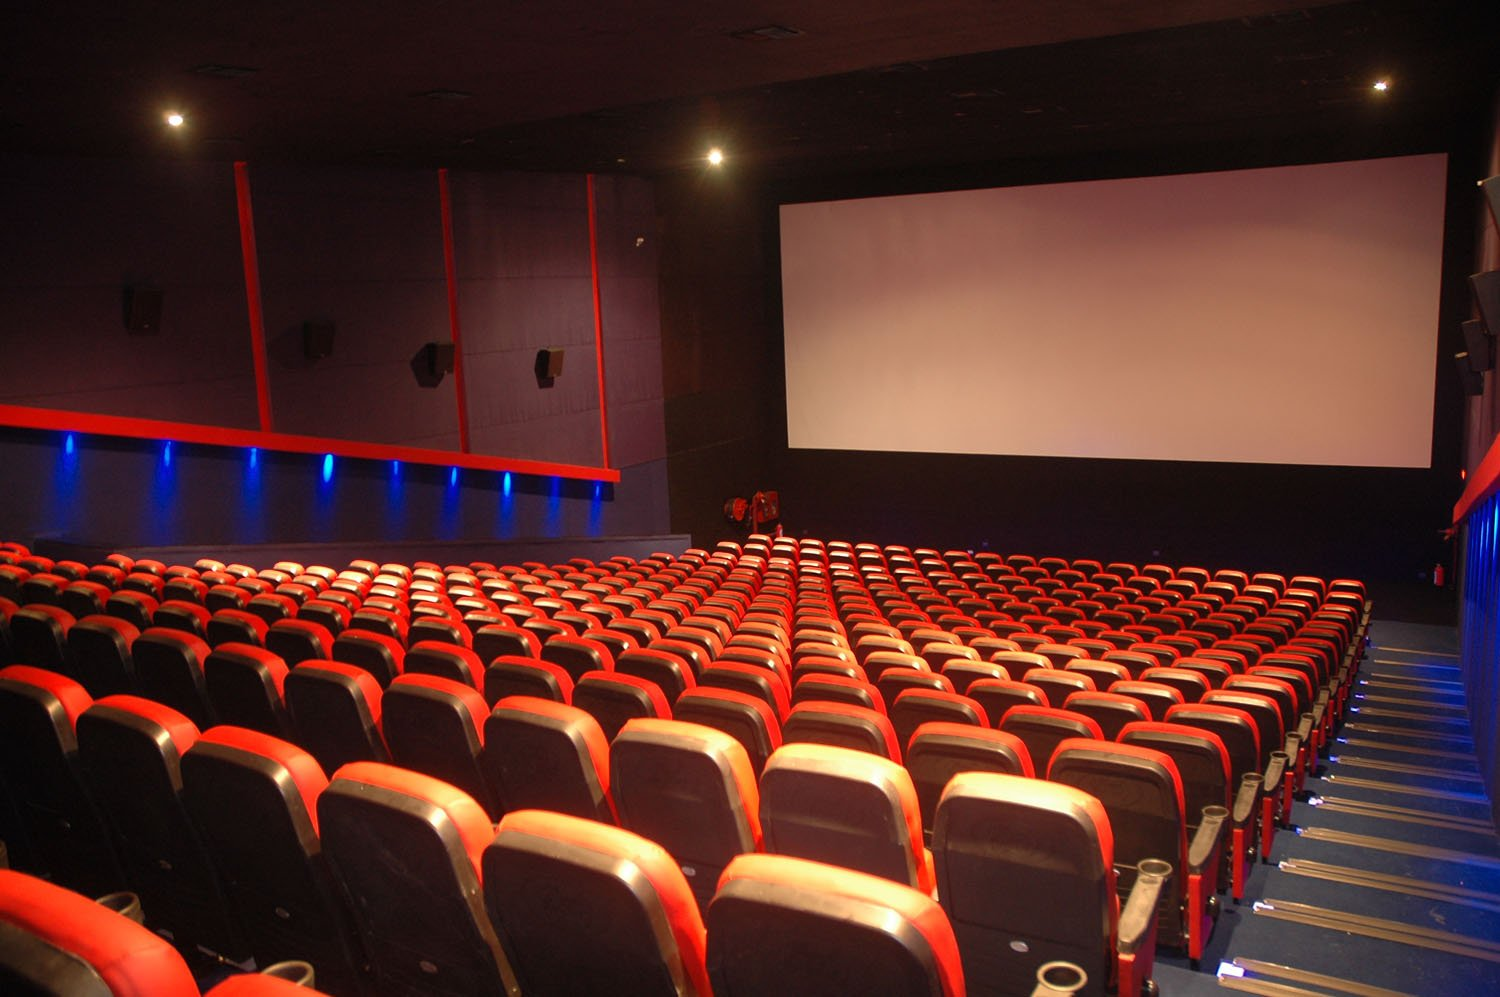 multiplex share prices tanks to a new low after maharashtra government order